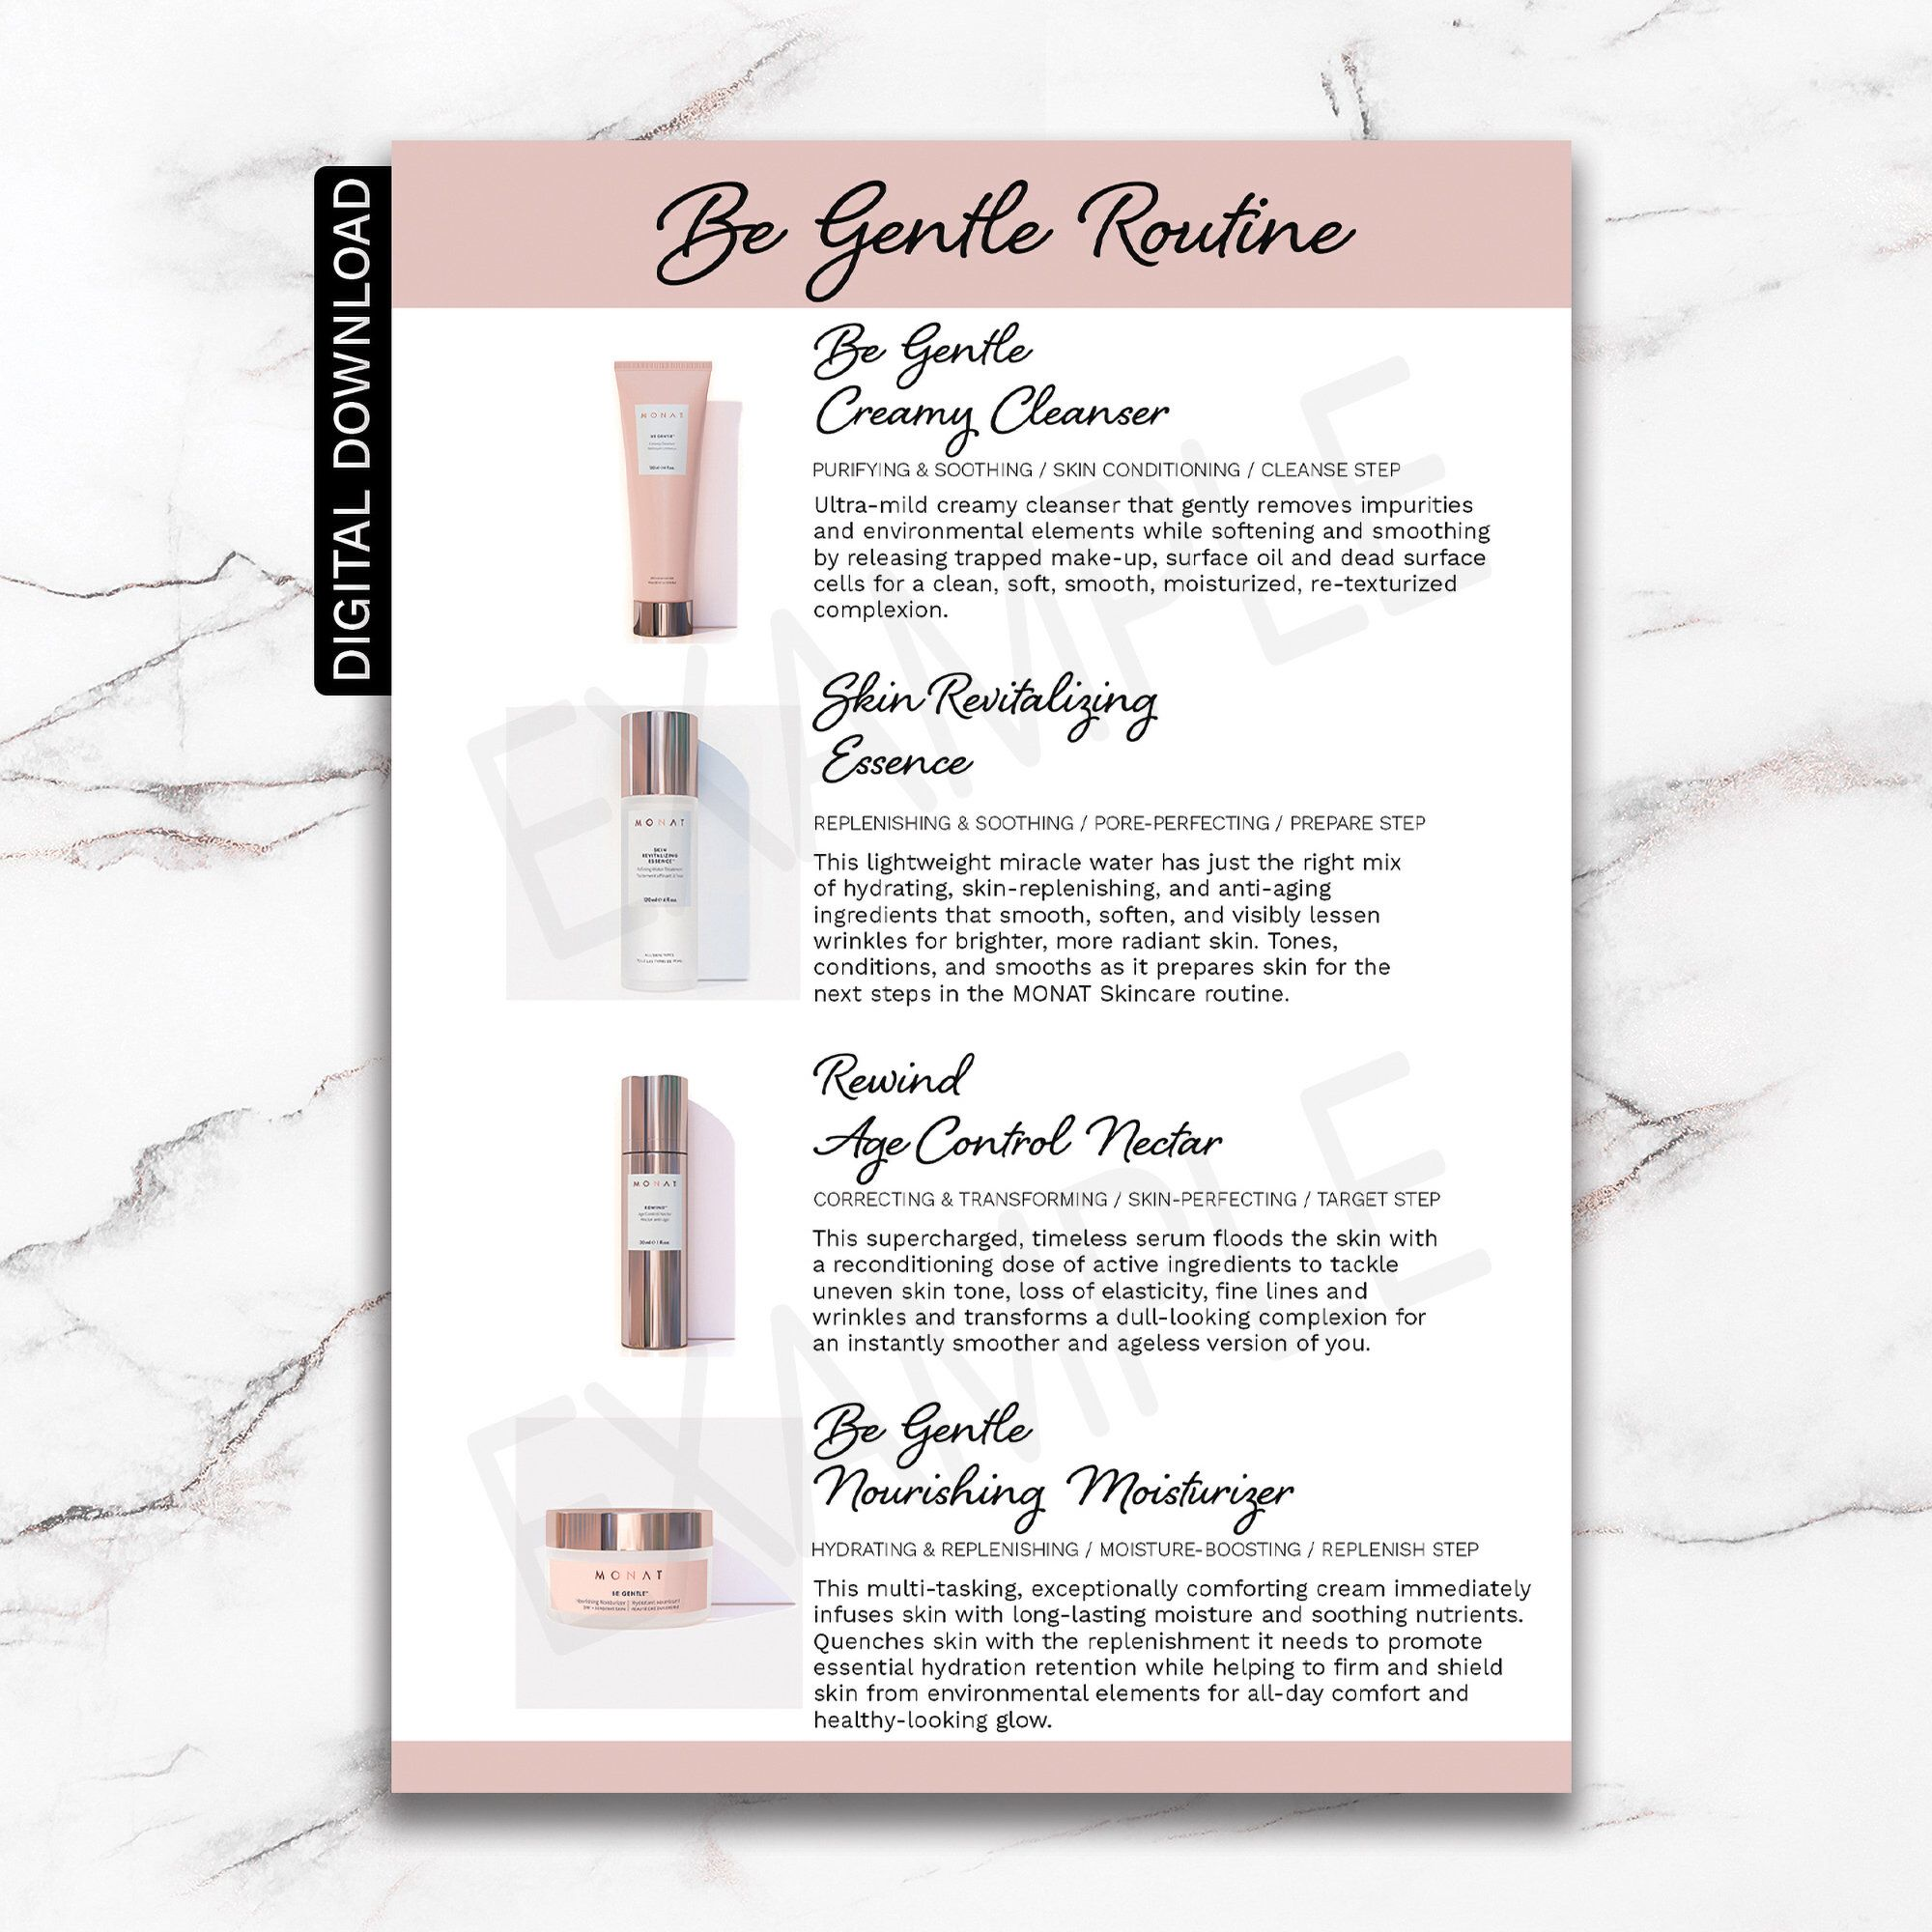 Monat Skincare Be Gentle Routine Information Card Monat Etsy Monat Hair Monat Soothing Skin